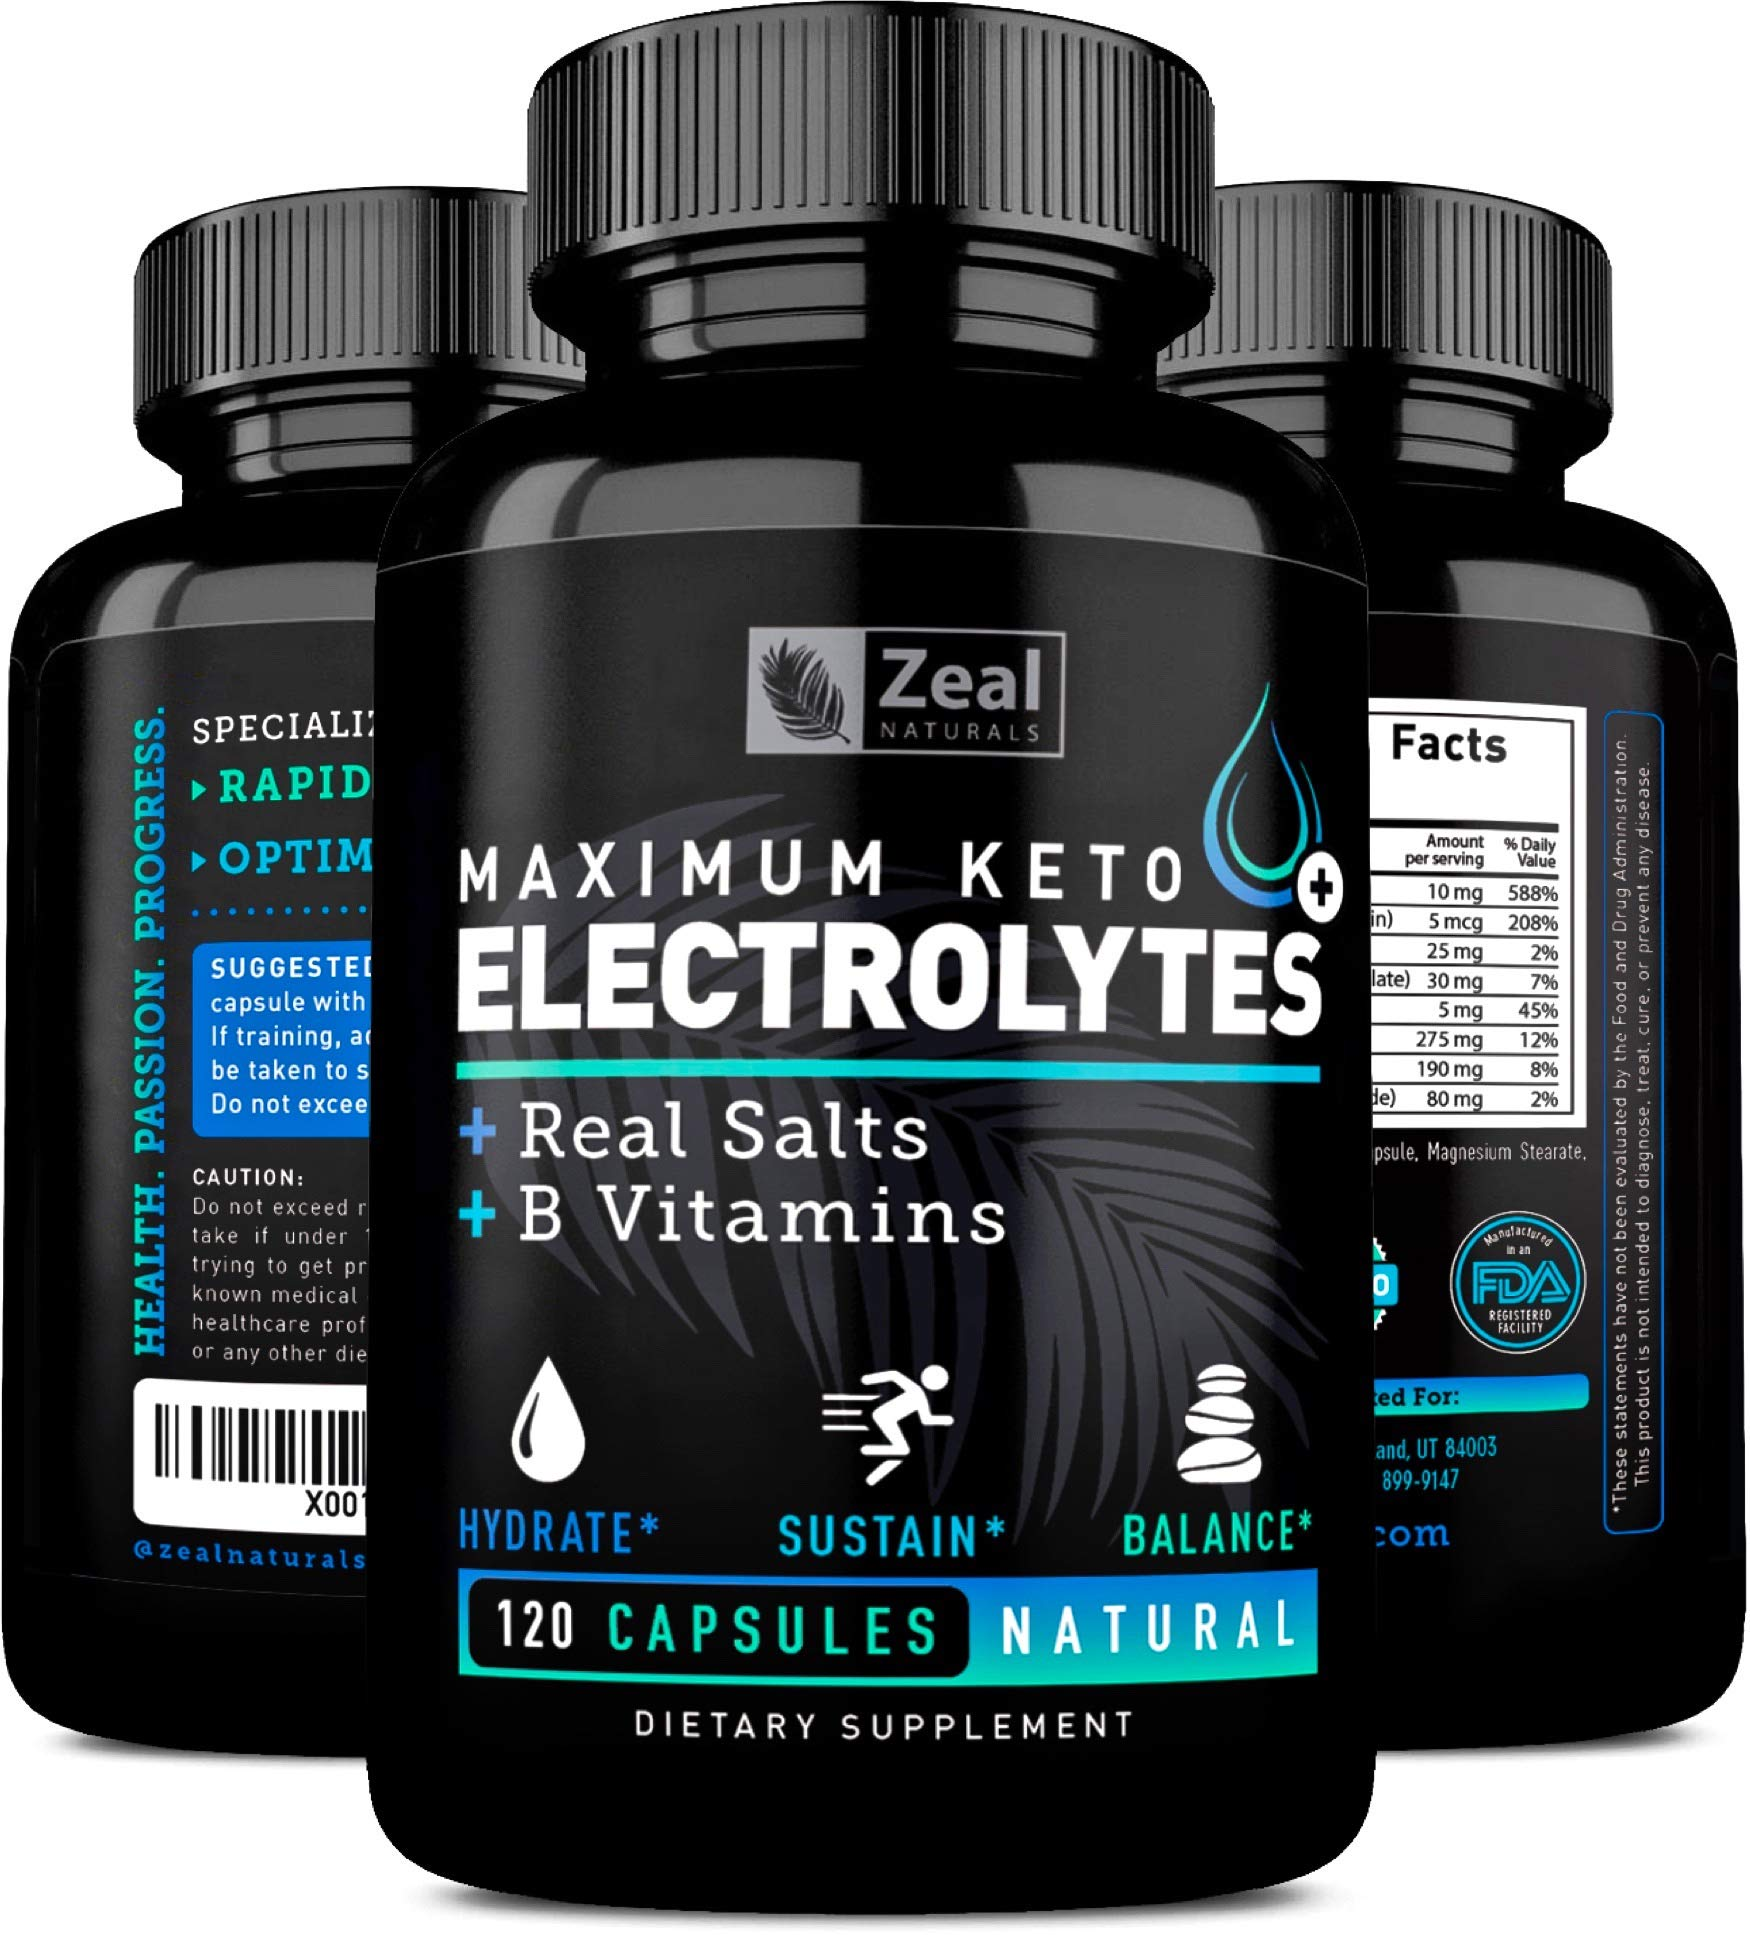 Keto Electrolyte Supplement (120 Capsules) Electrolyte Tablets w Real Sea Salt, B Vitamins, Magnesium and Potassium Supplements - Electrolyte Powder Salt Pills & Electrolyte Drink Hydration Tablets by Zeal Naturals